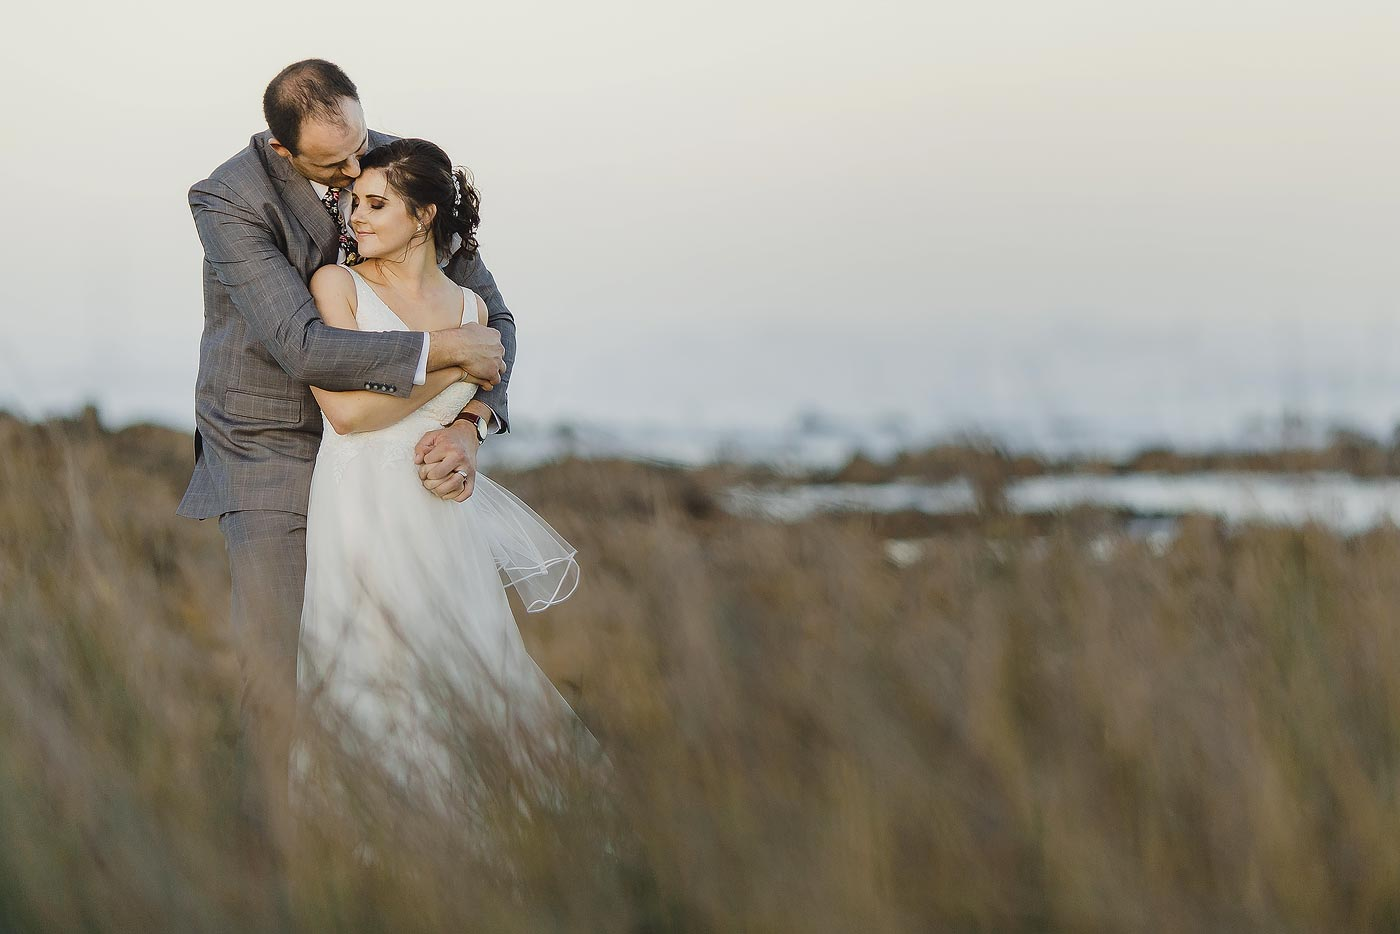 Copy of Classic Wedding Photo Pose in reeds at the ocean.